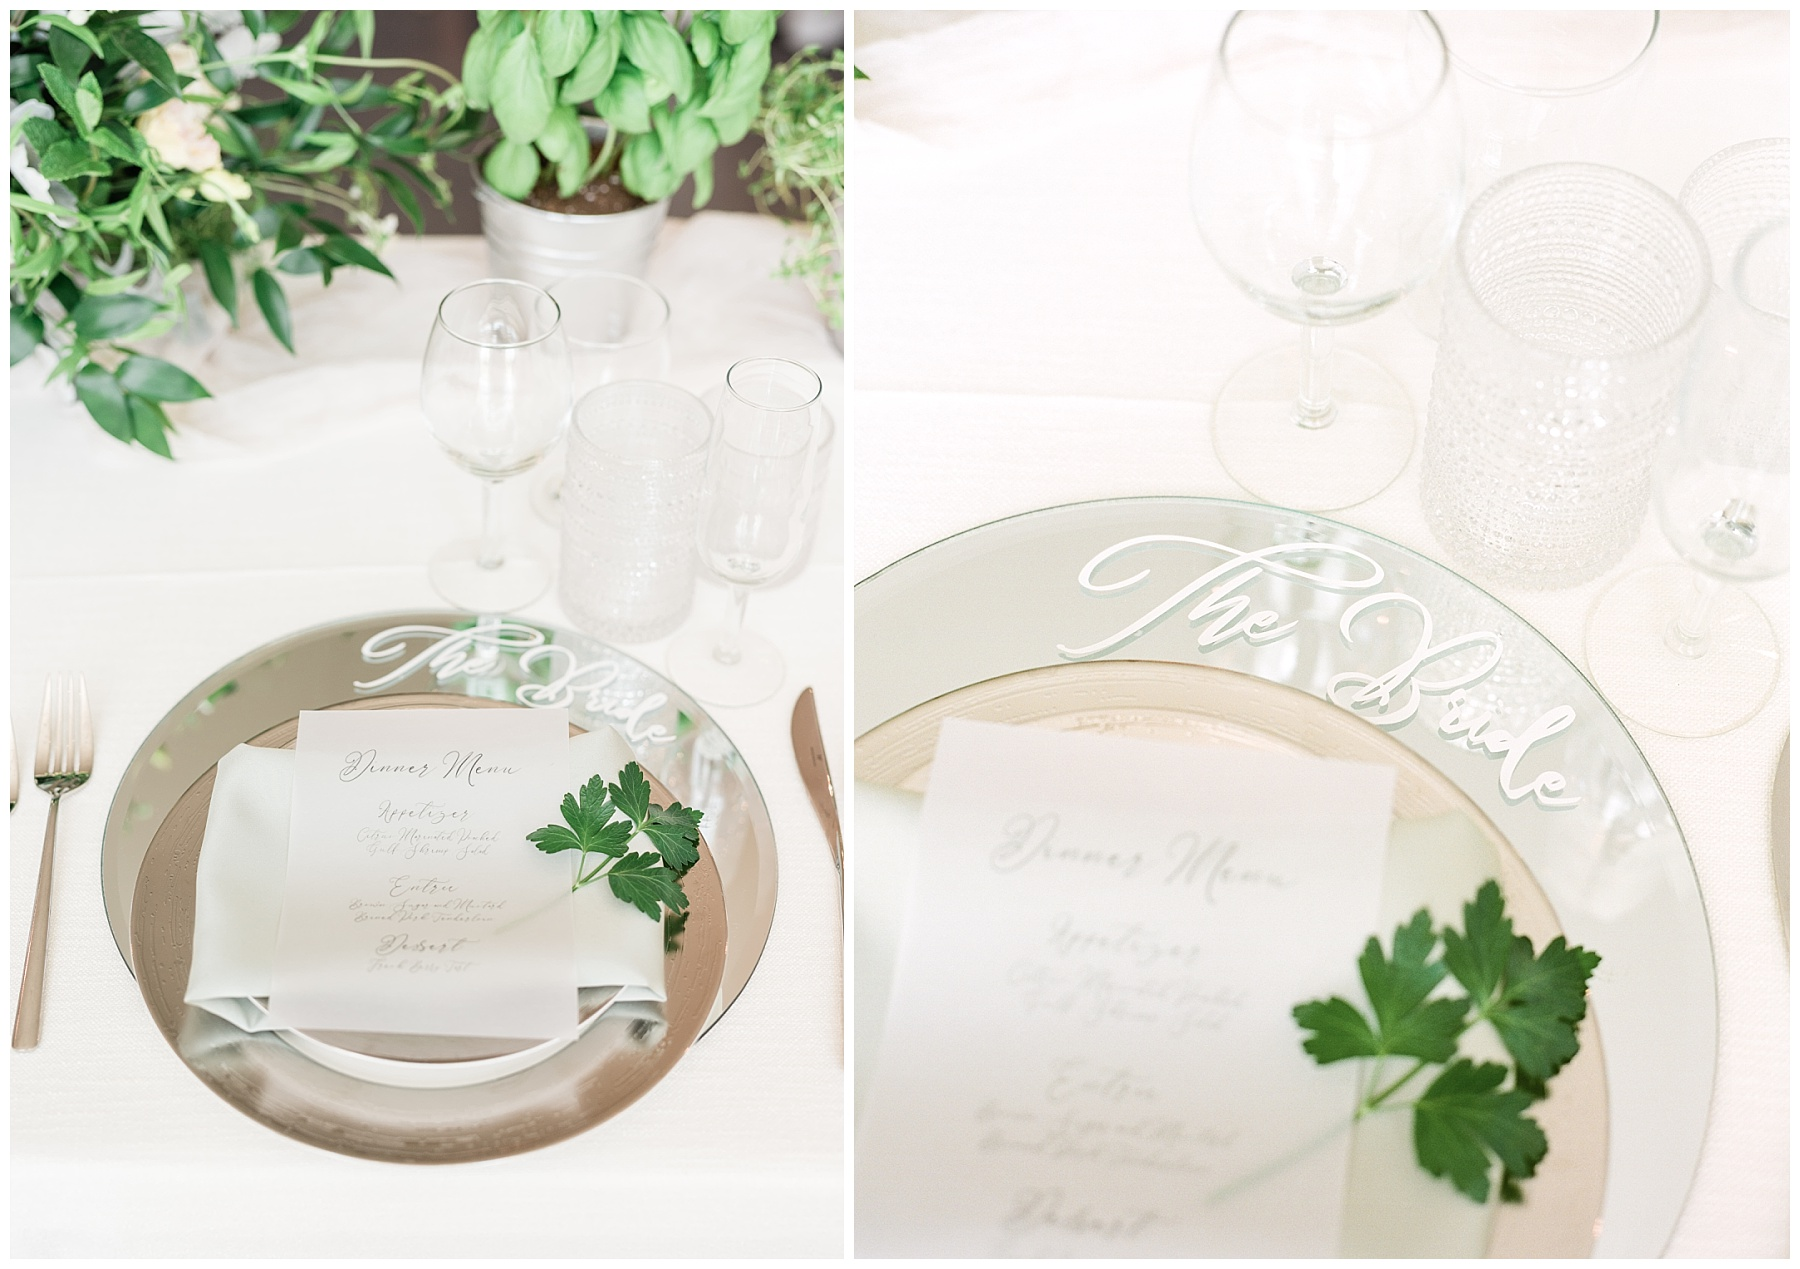 Textural Organic Wedding in All White Venue by Kelsi Kliethermes Wedding Photographer - Missouri, Midwest, and Destinations_0094.jpg